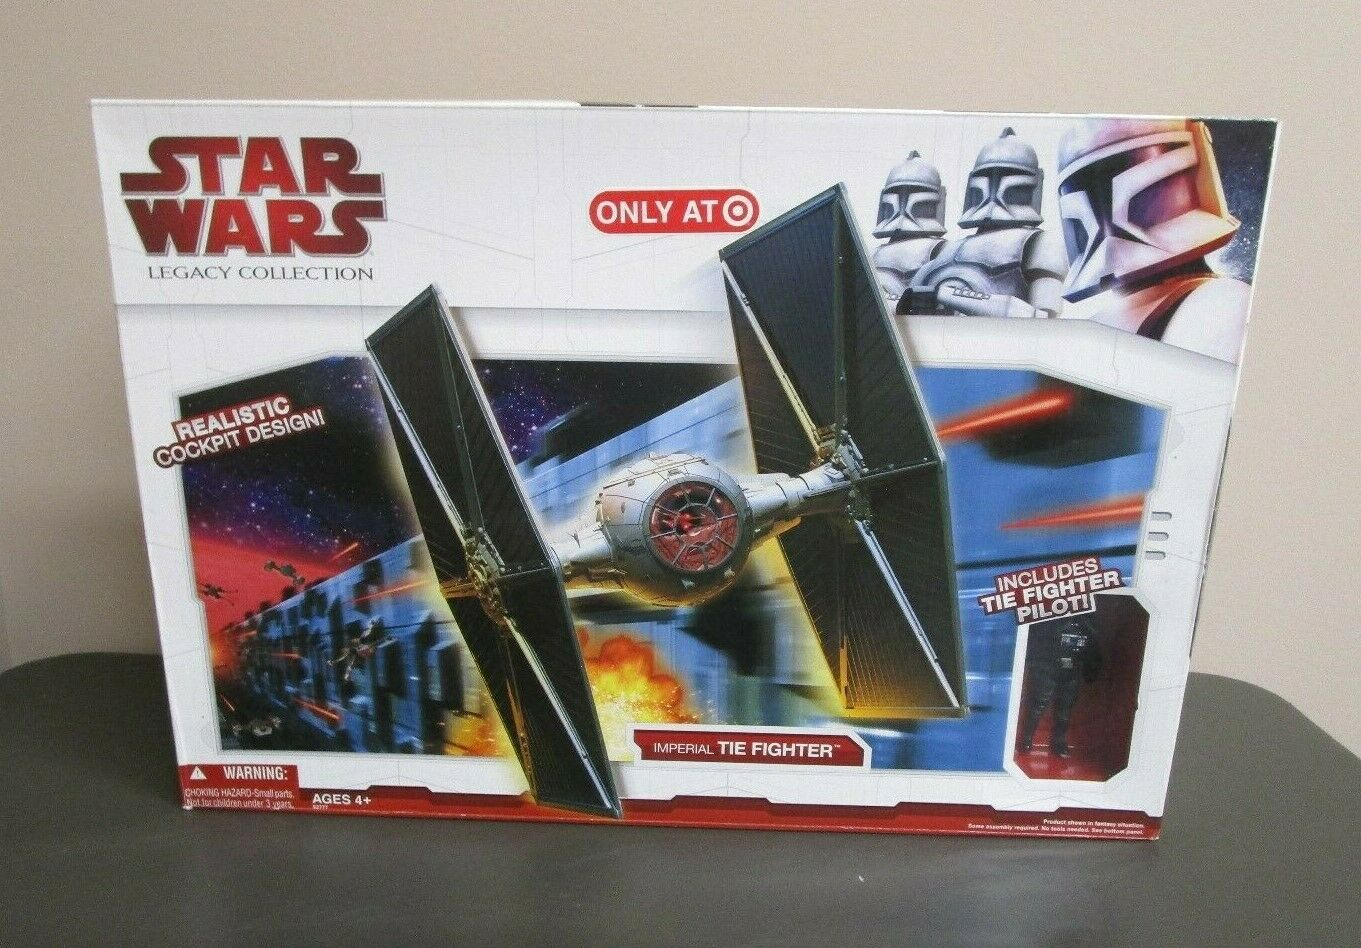 Imperial Tie Fighter 2009 STAR WARS Legacy Collection TARGET Exclusive MIB  4